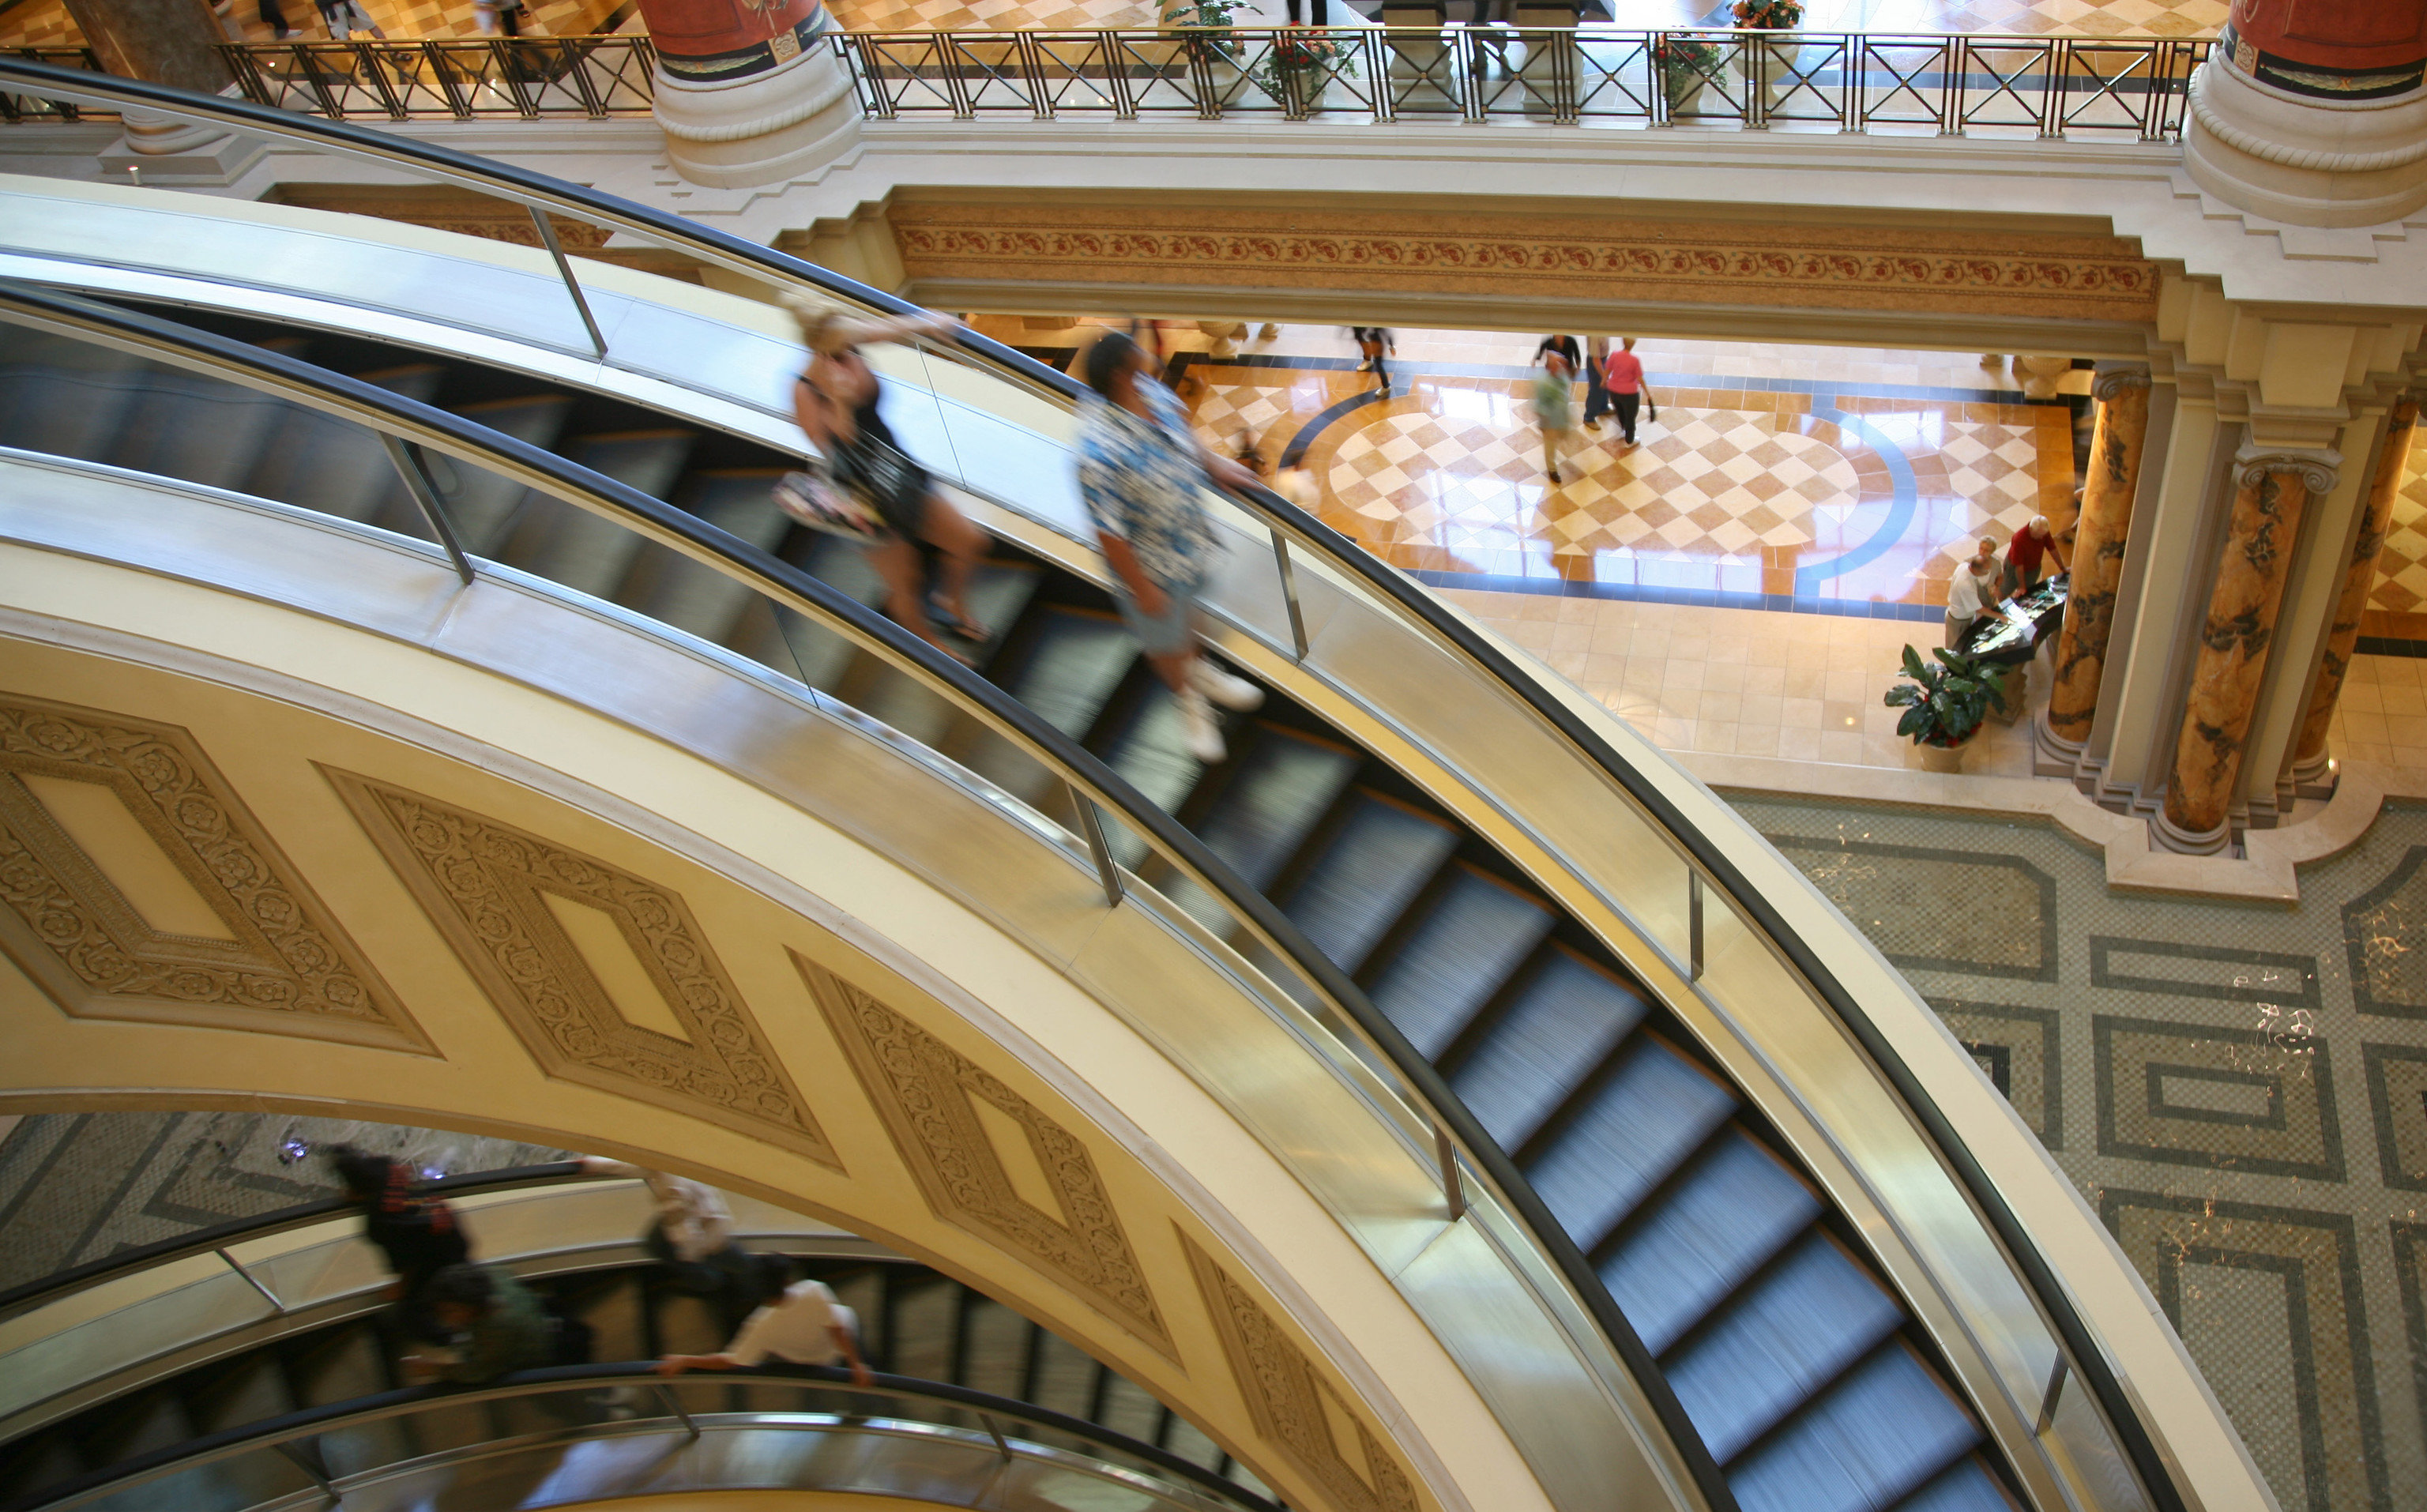 Trip Ideas building Architecture arch facade public transport escalator window stairs shopping mall tourist attraction ceiling step